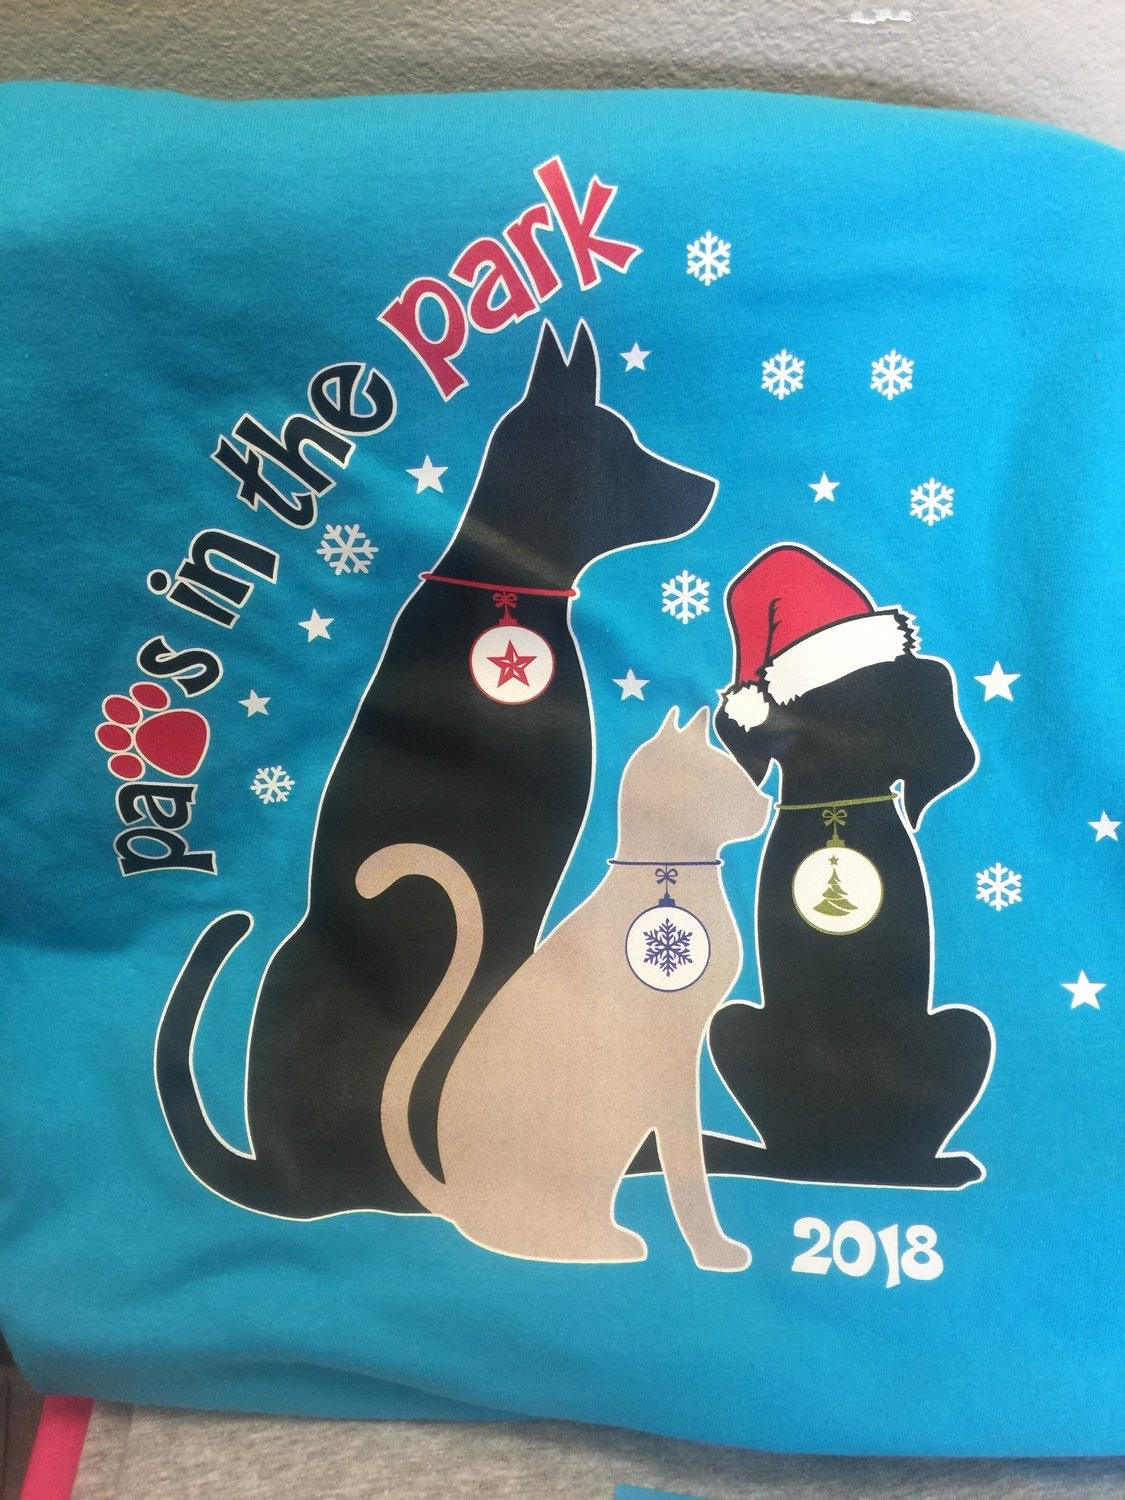 Paws in the Park 2018 shirts